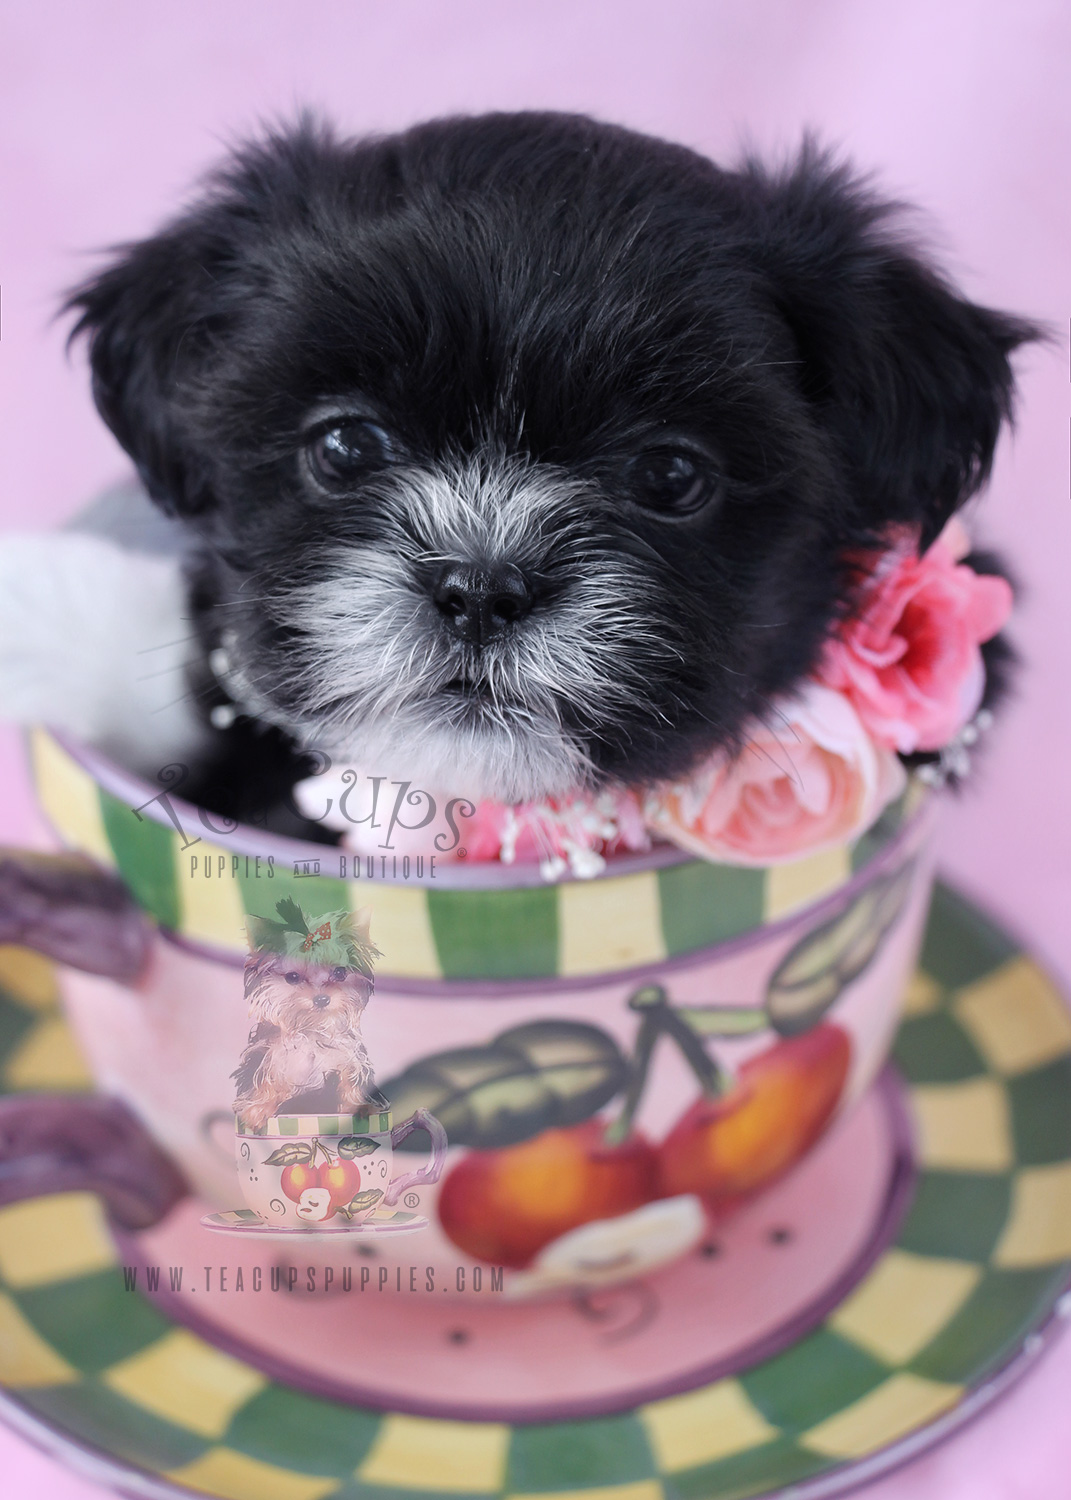 teacup shih tzu puppies for sale in ga chihuahua puppies for sale by teacups puppies and boutique 1669